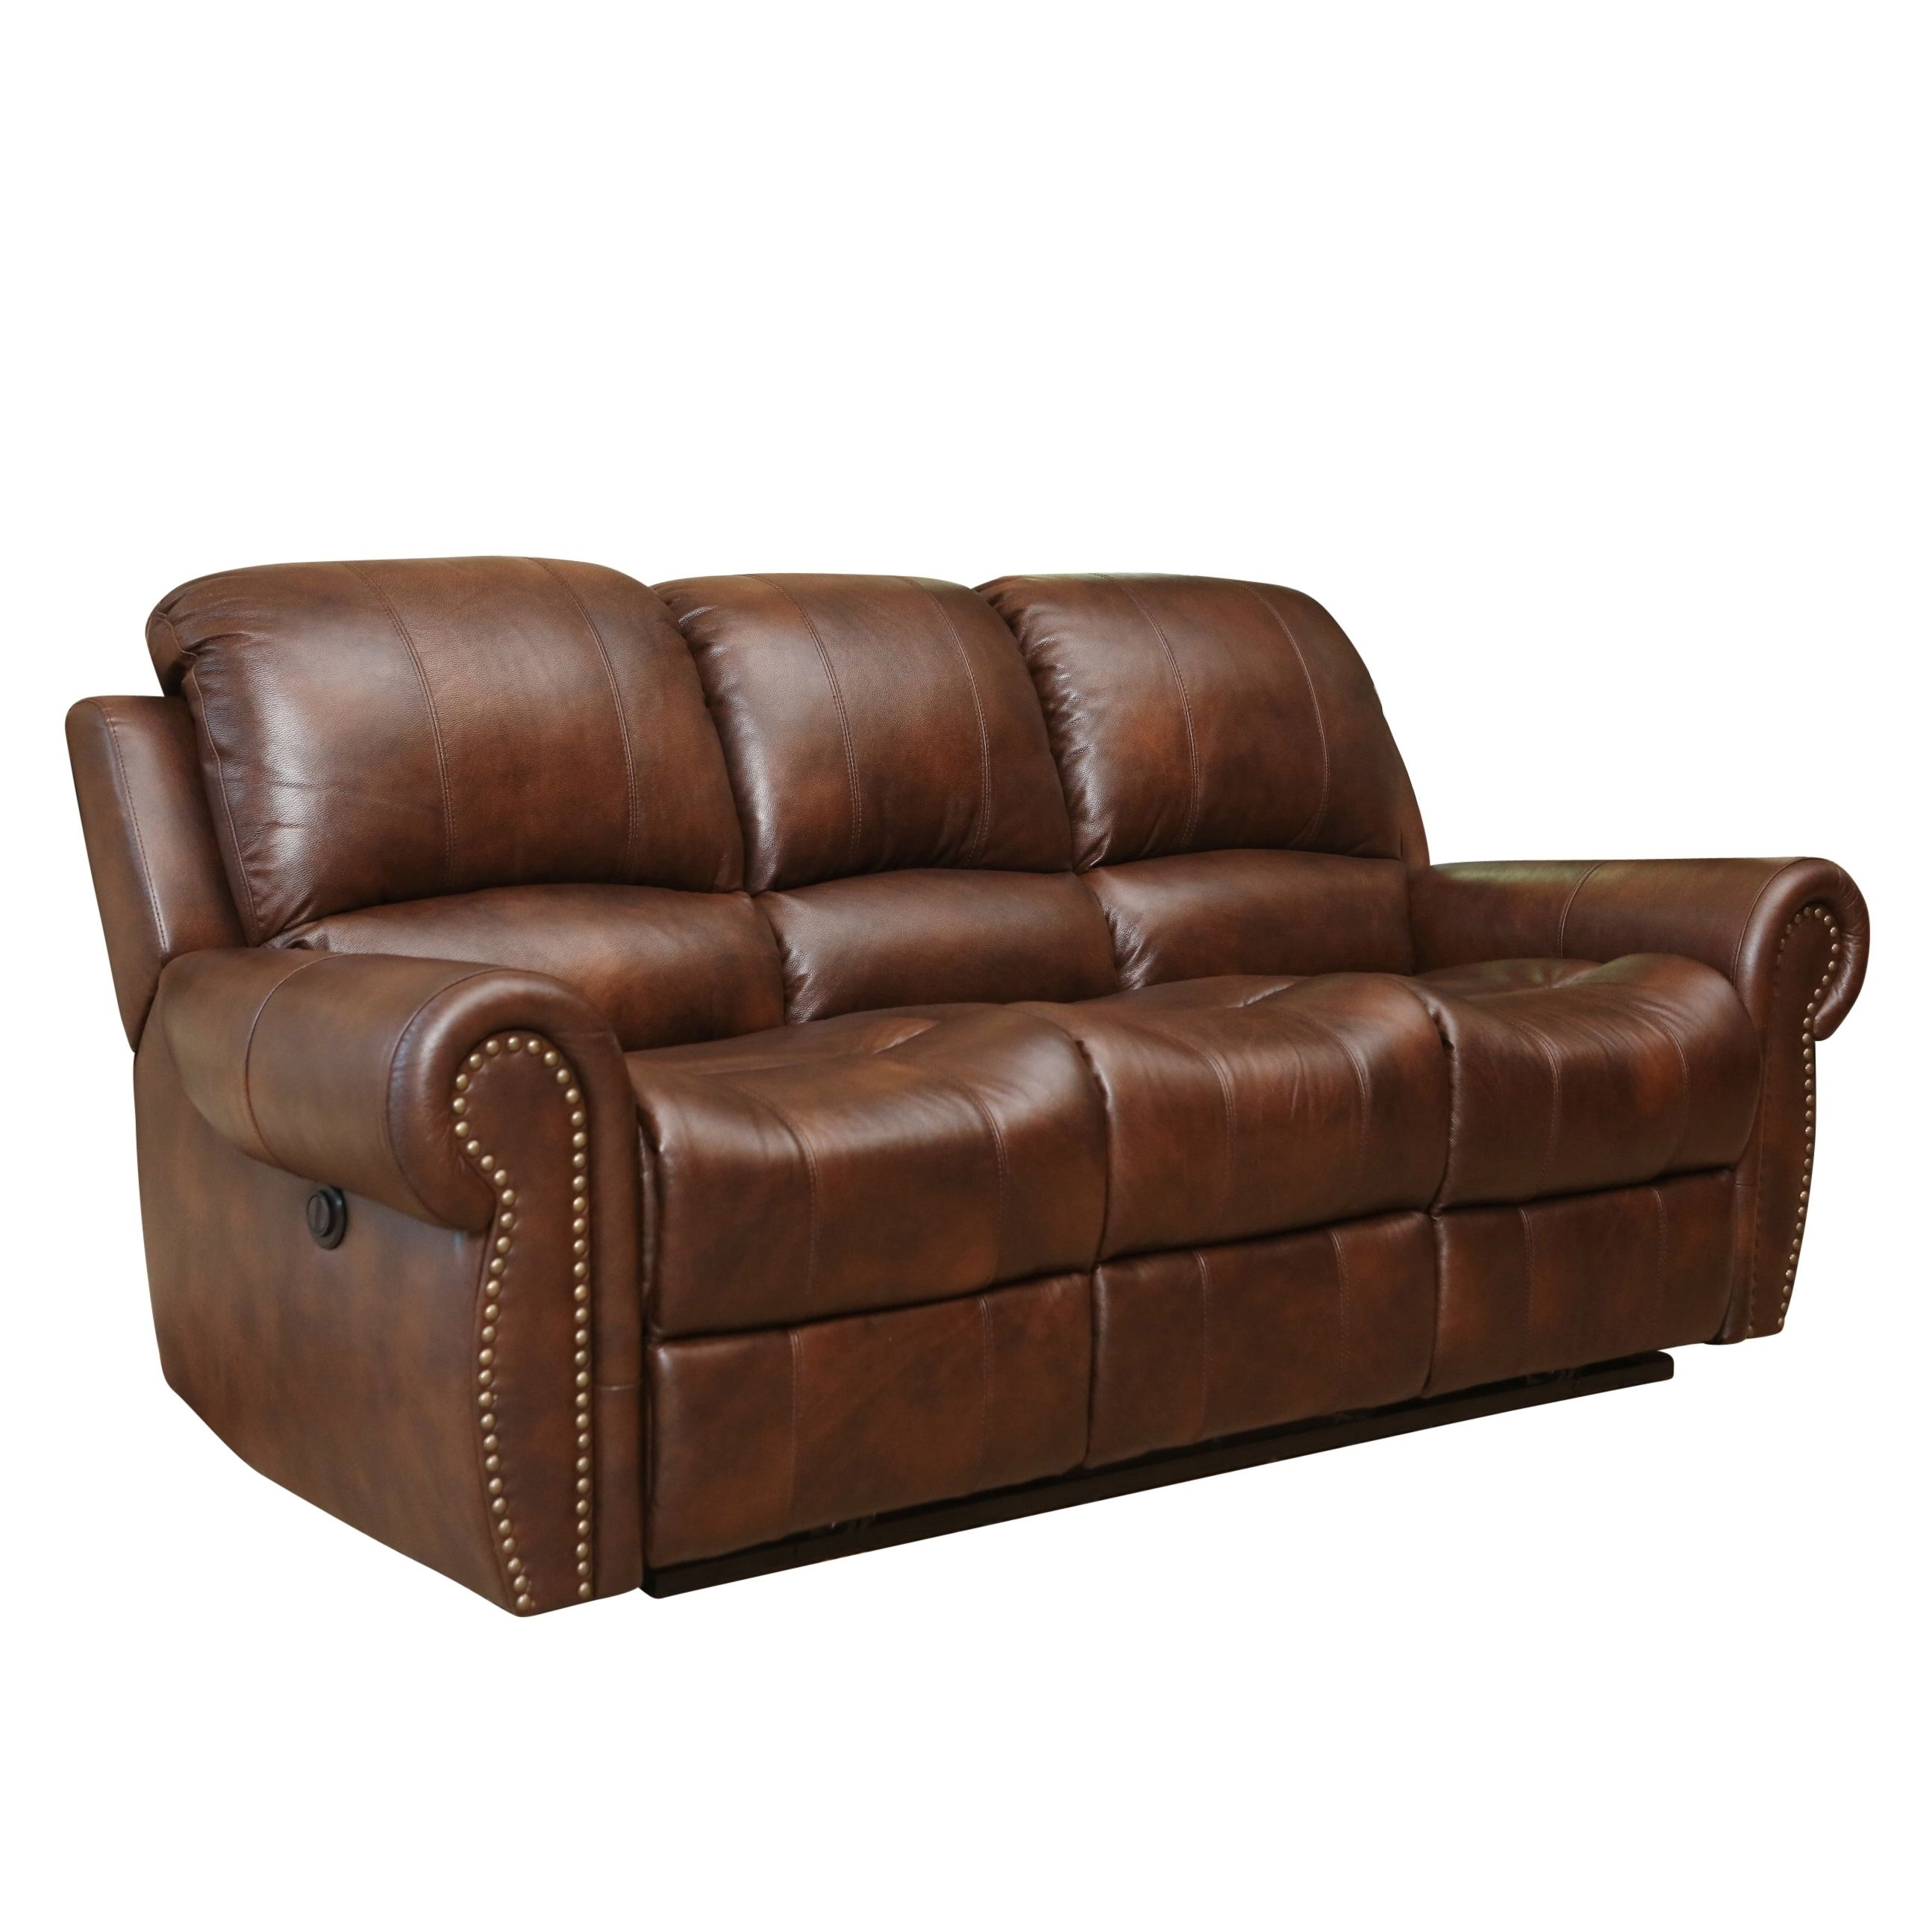 Sterling Sofa Pottery Barn Chesterfield Upholstered Abbyson Living Top Grain Leather Power Reclining